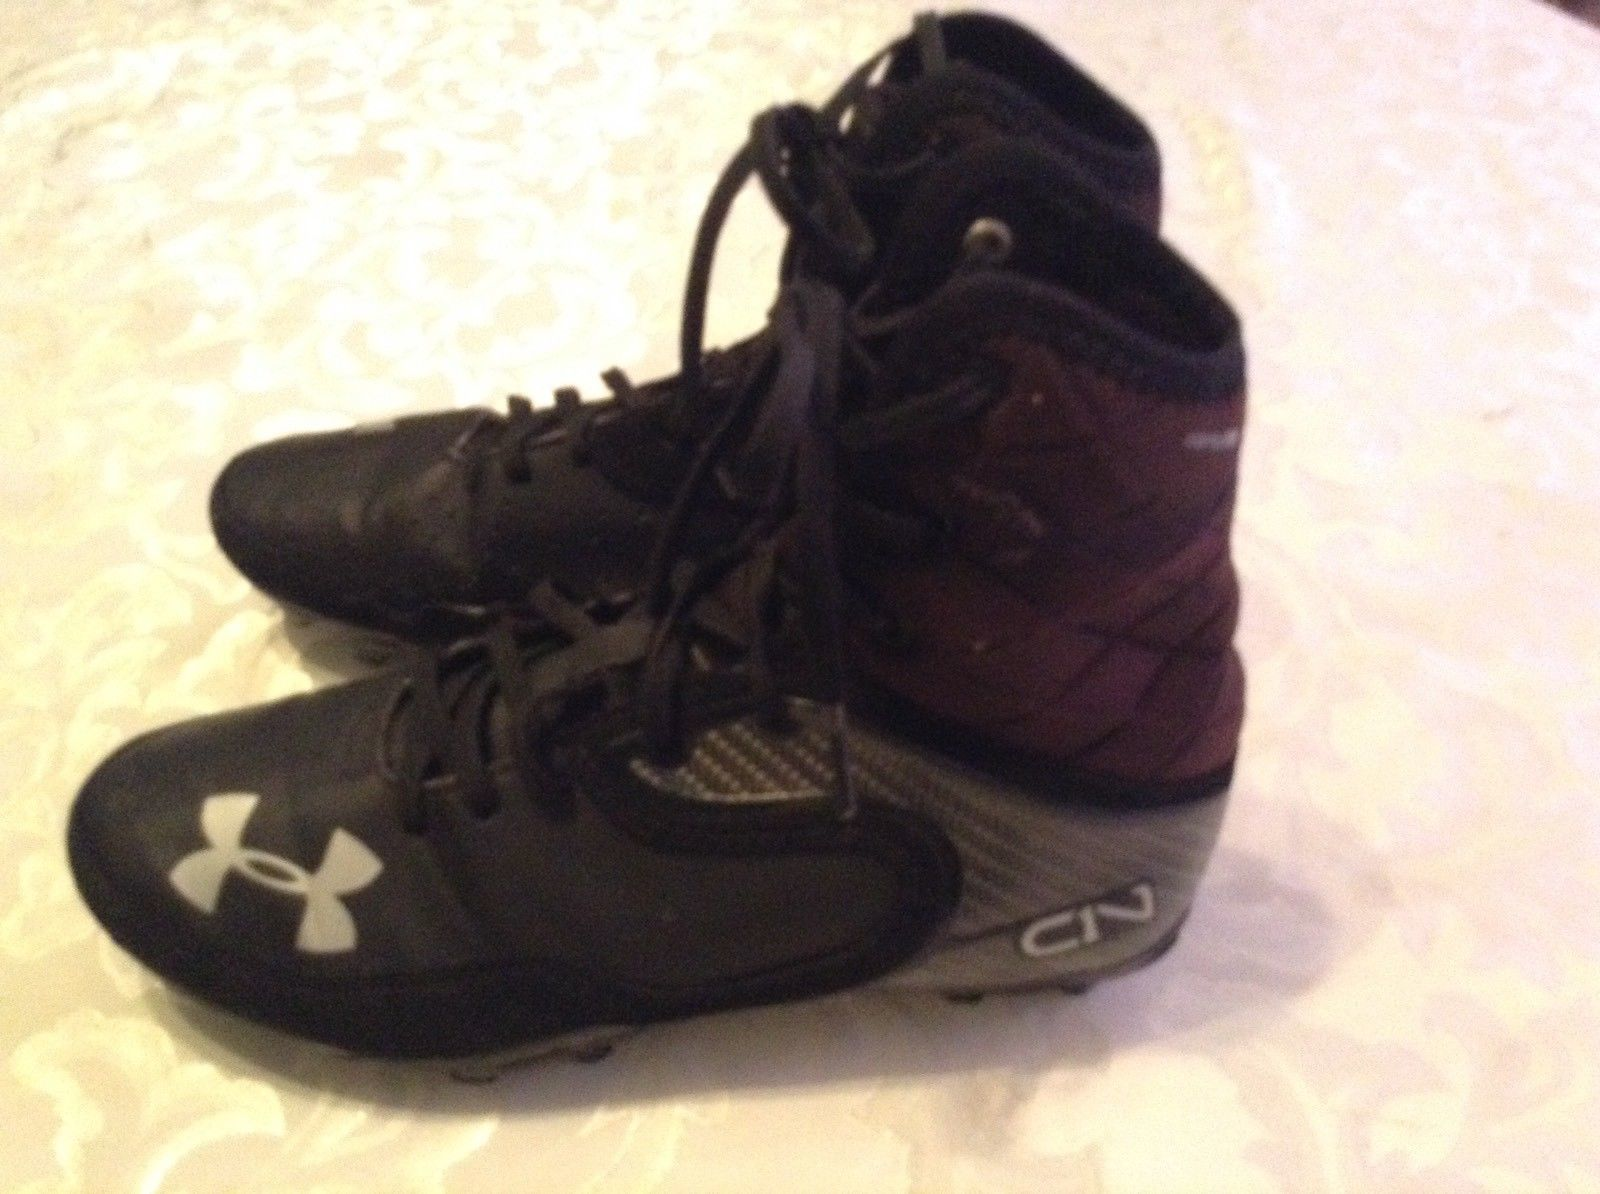 f8f7a79fea0 Football C1N Cam Newton Under Armour cleats and 50 similar items. S l1600